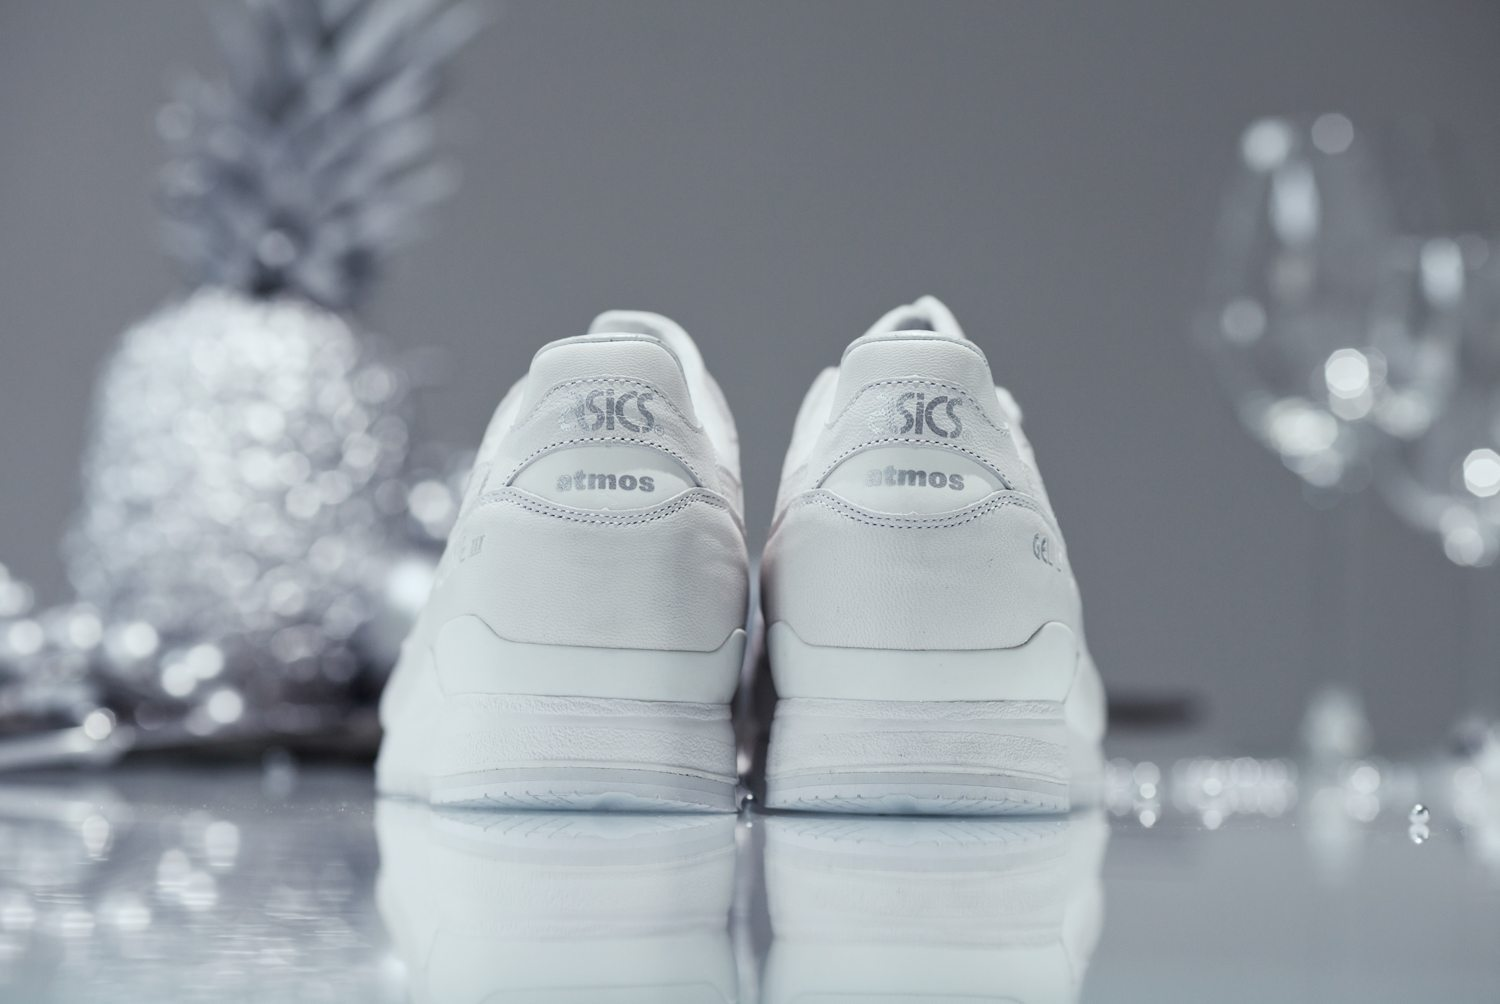 Atmos x Asics Gel Lyte III B Day Dinner 11